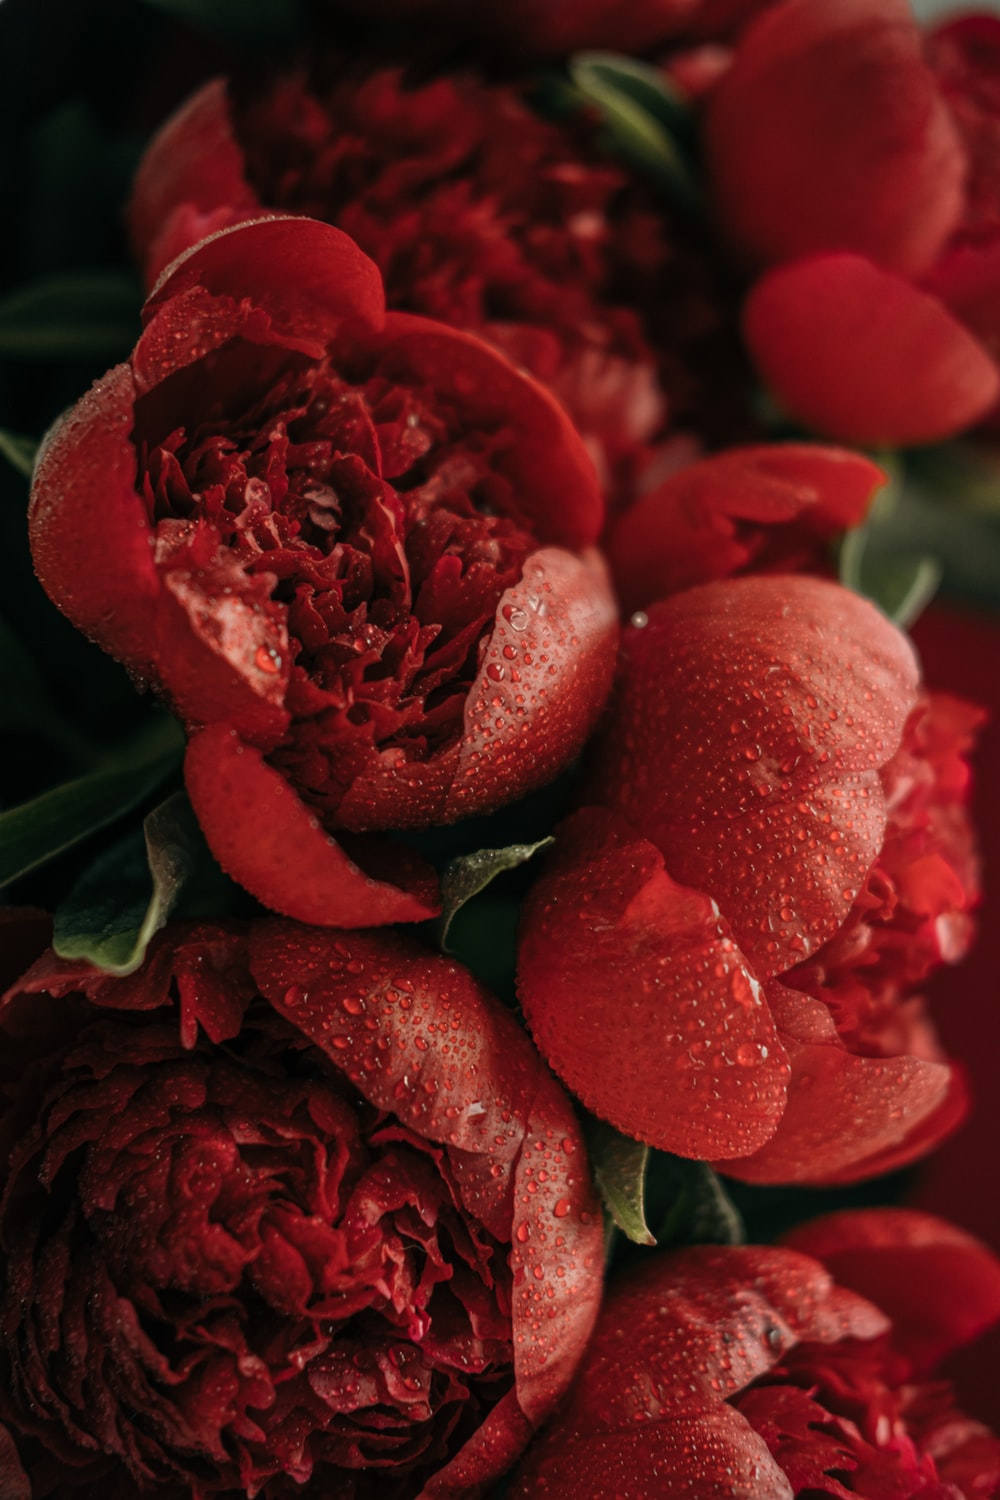 red roses in close up photography